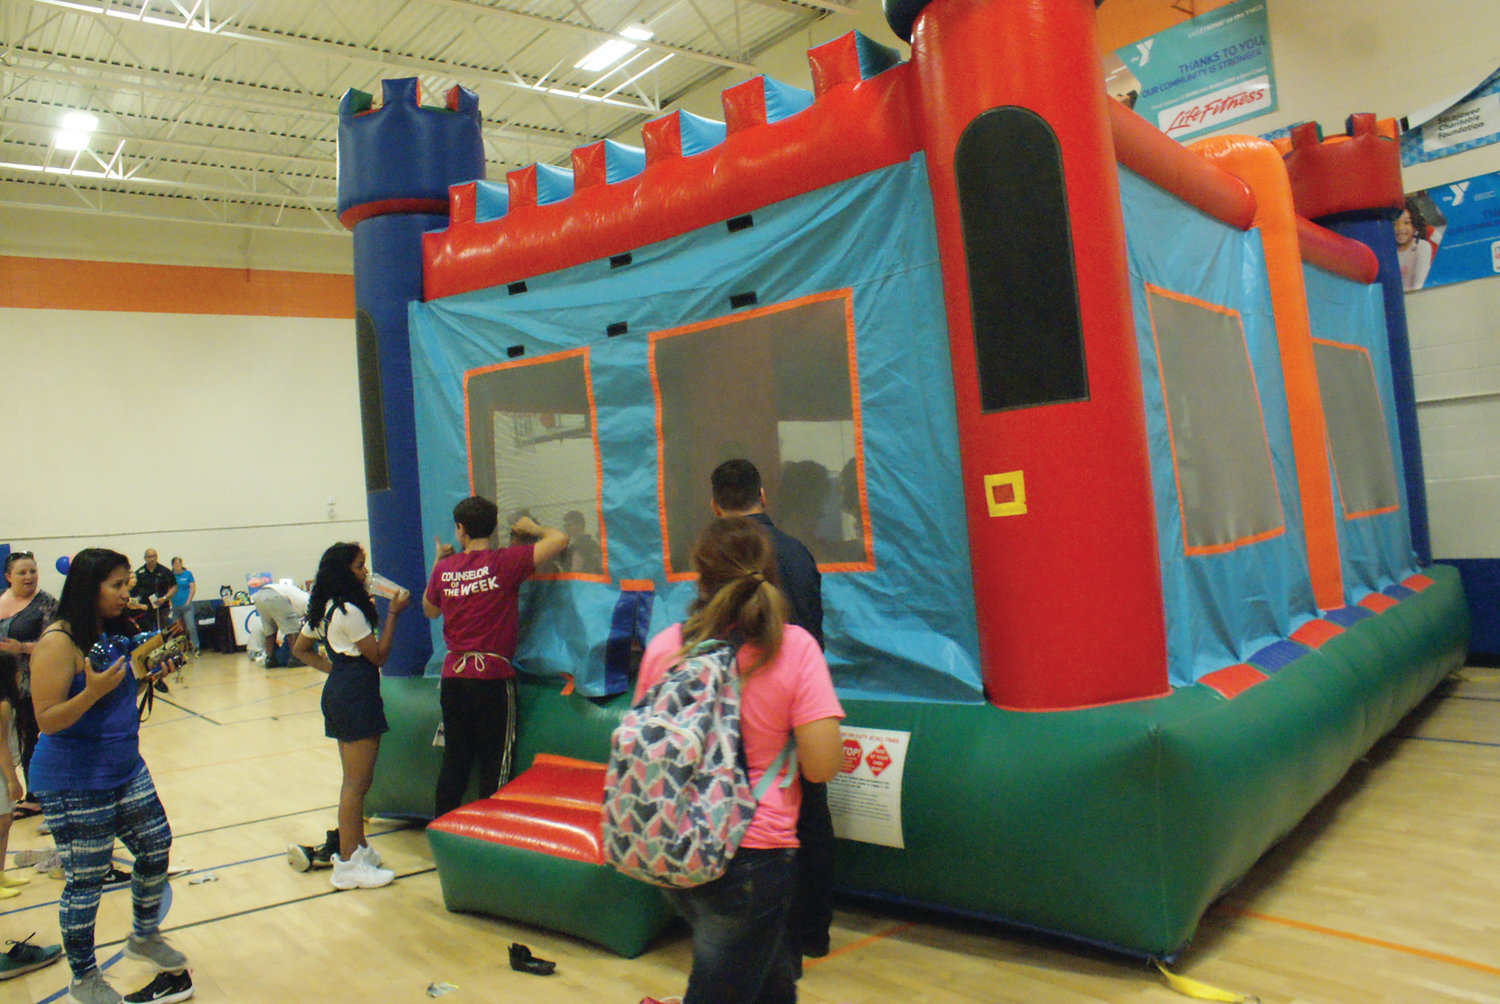 BOUNCE TIME: On of the more popular activities at the Out of School Time Carnival held at the Cranston YMCA on June 6 was the bounce house.